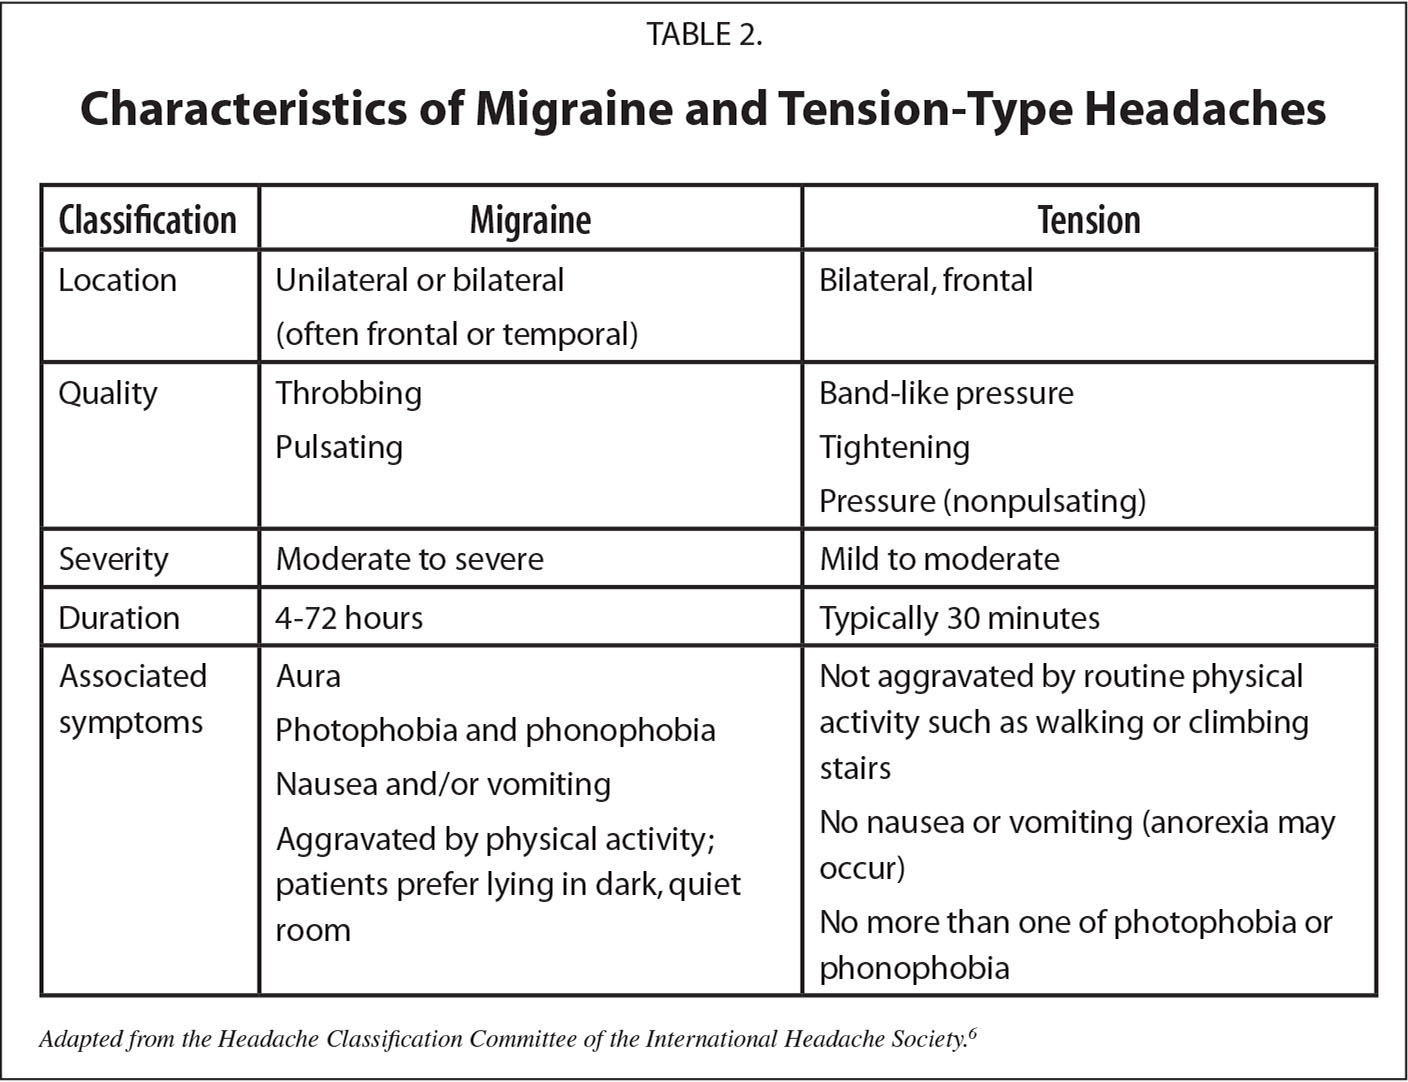 Characteristics of Migraine and Tension-Type Headaches